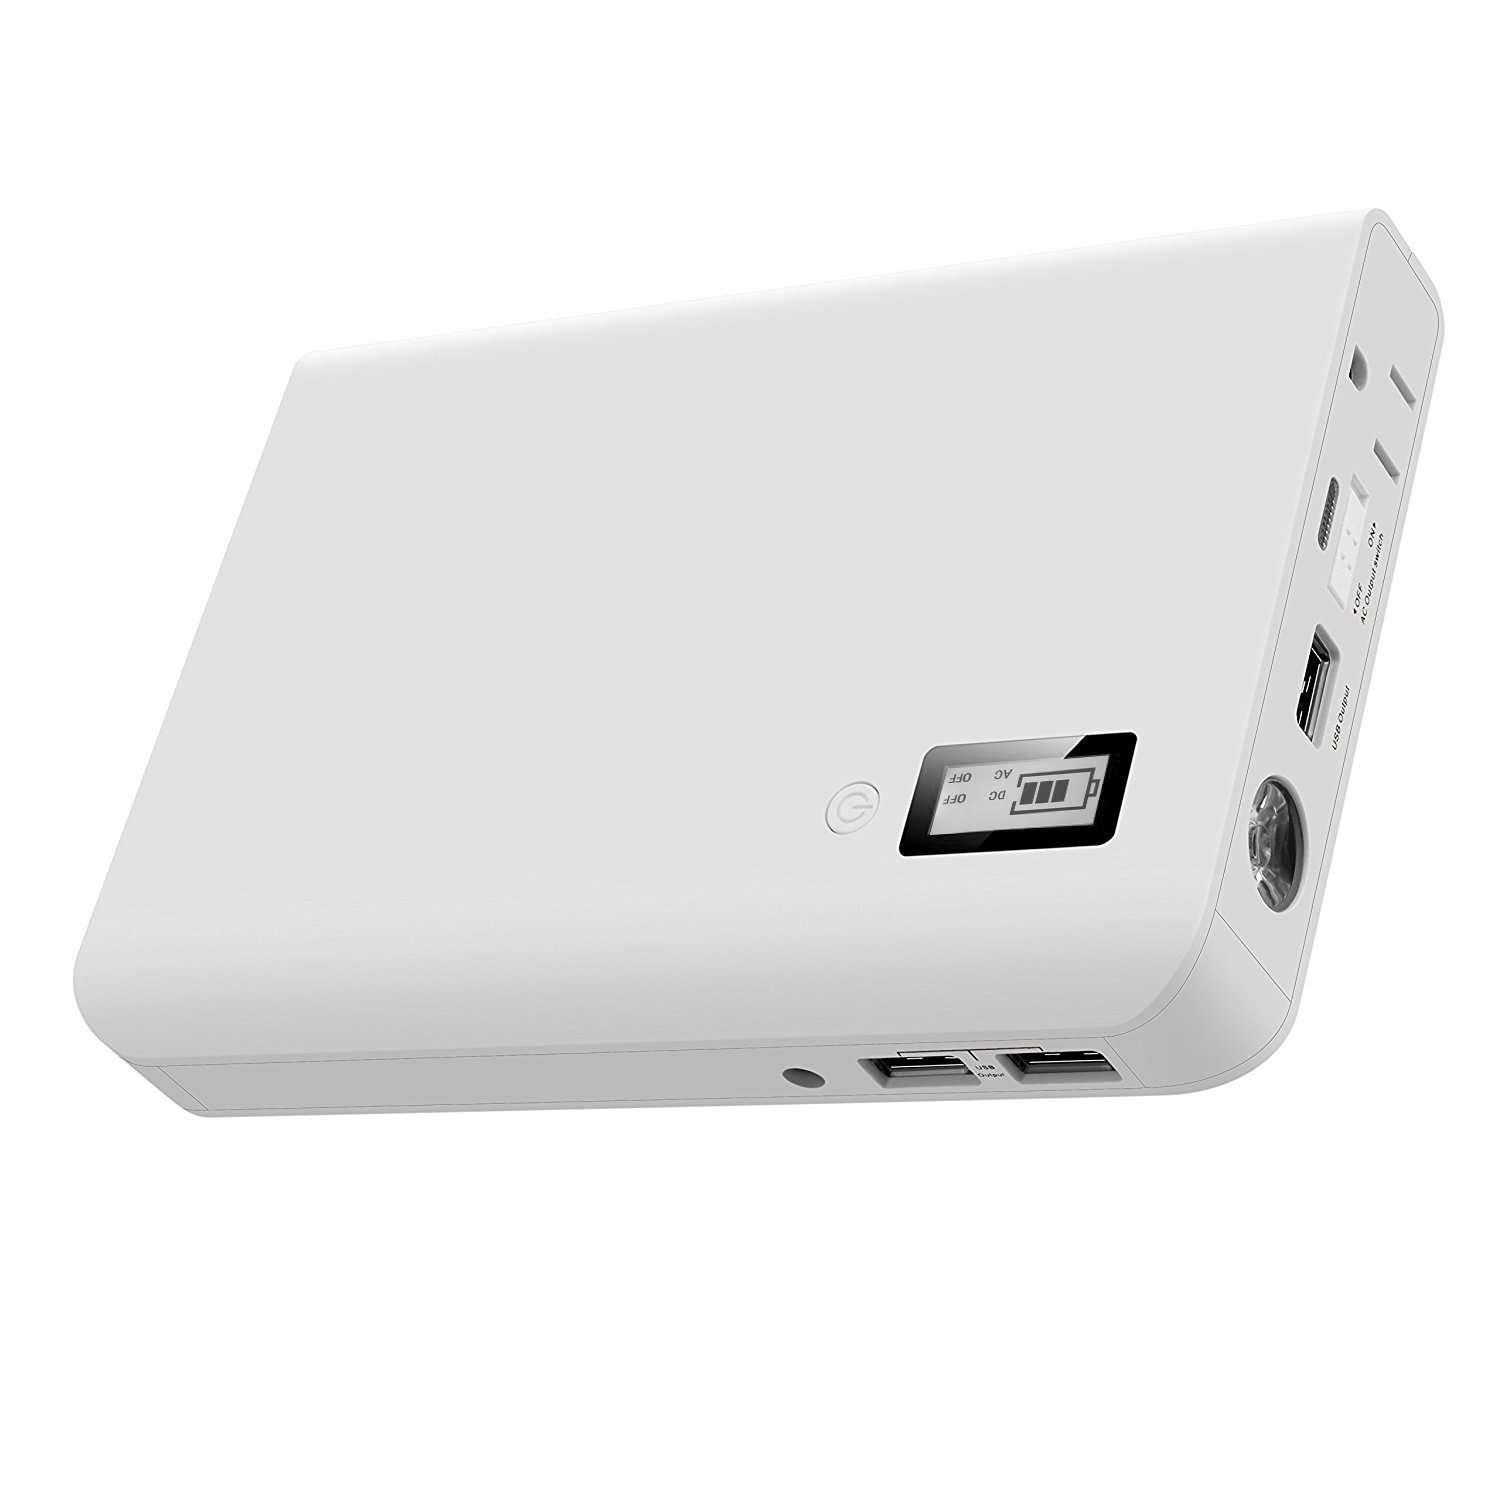 Fleck Ultra-High Capacity 24000mAh 3.1A 1 AC Outlet and 3 USB Ports Multi-Functional Portable External Battery Power Bank Travel Charger for All Smartphones, Tablets, Laptops, Notebooks by Fleck